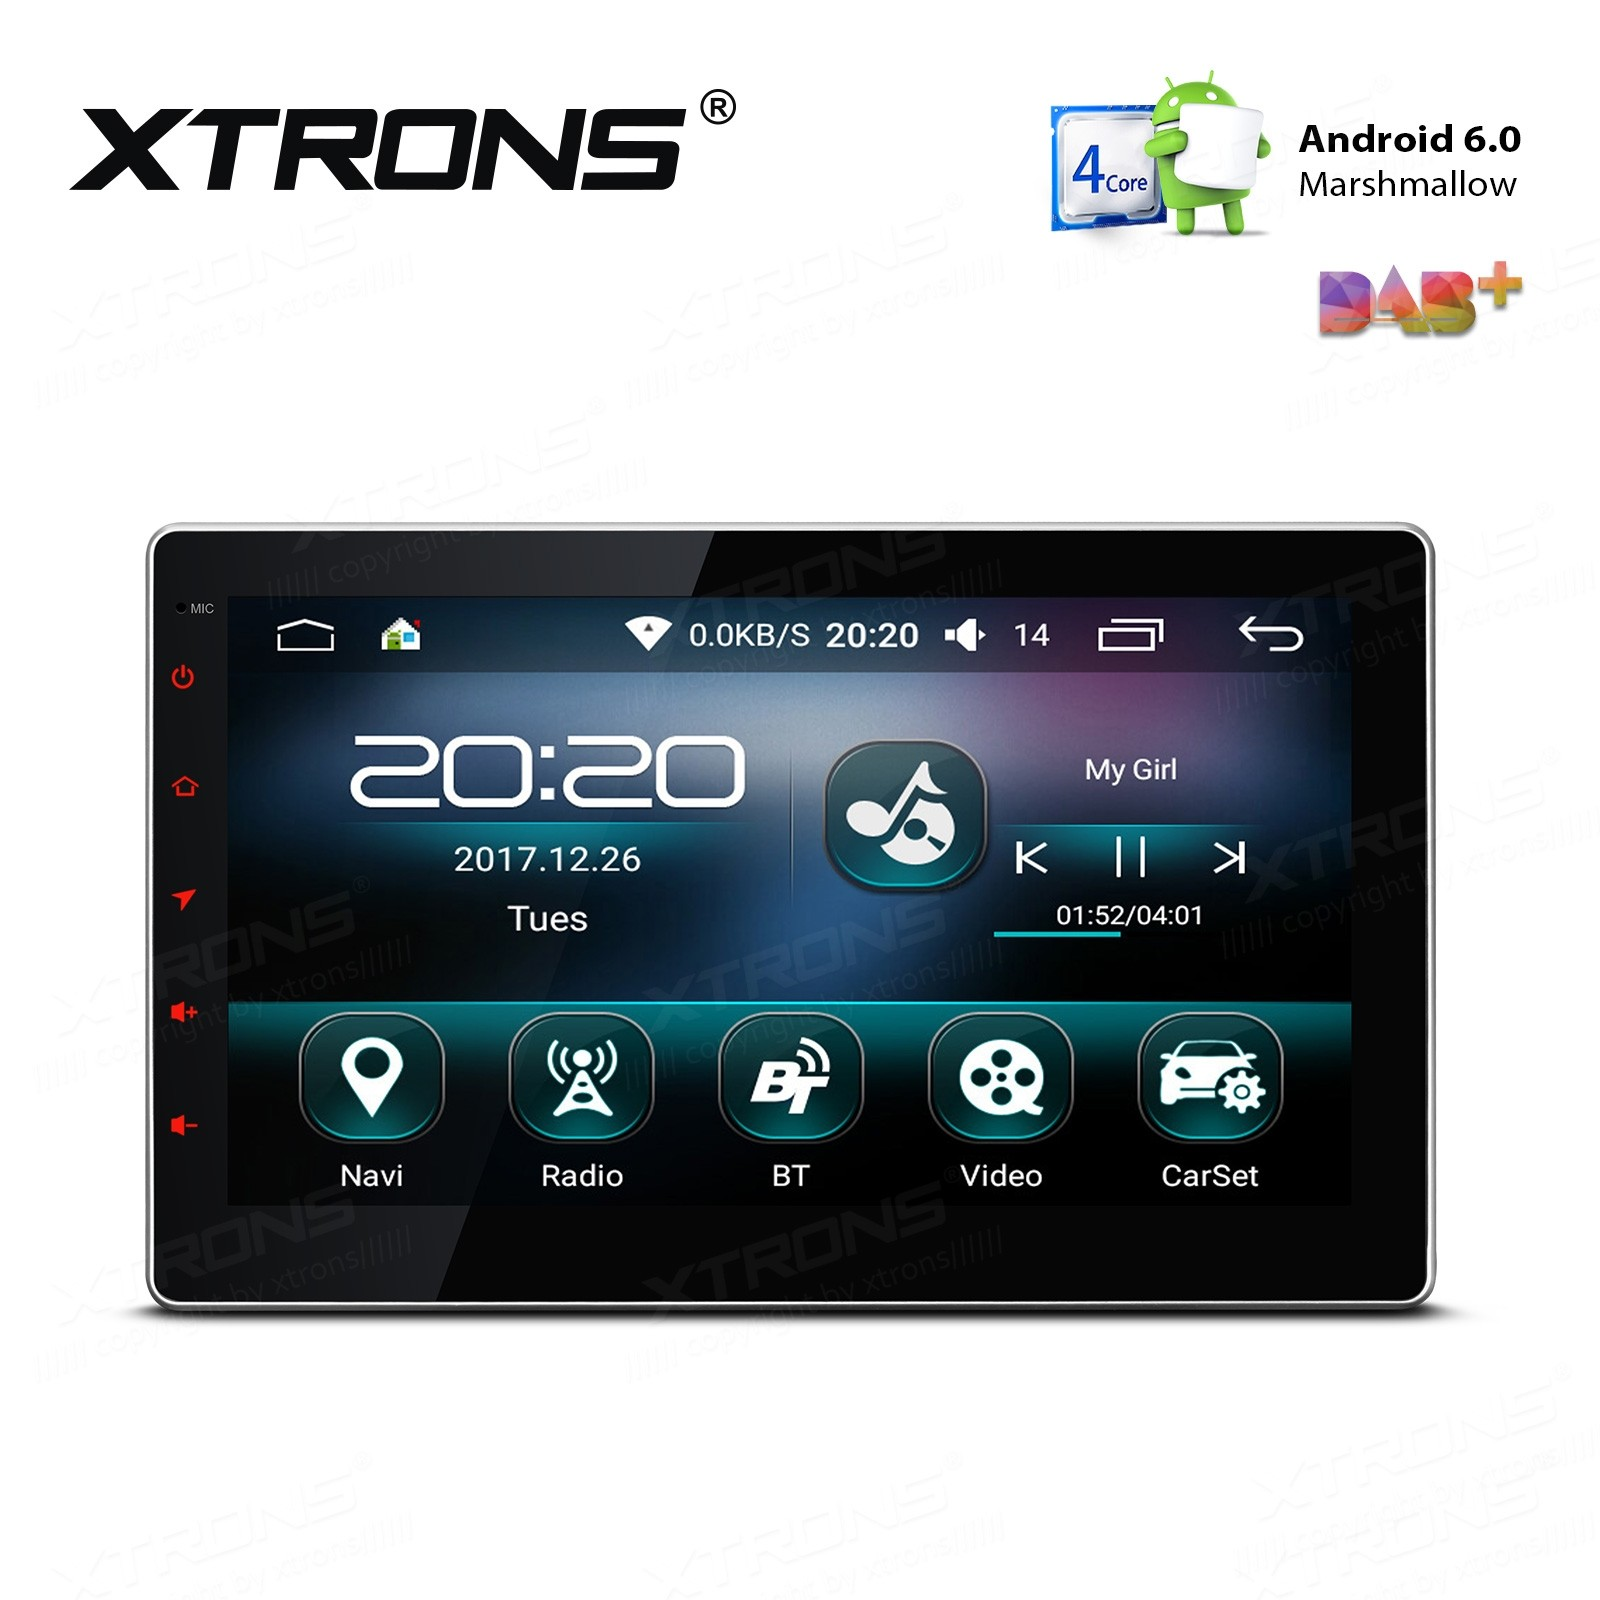 """10.1"""" Android 6.0 Marshmallow Quad Core 16G ROM HD Digital Touch Screen Car Multimedia Player"""